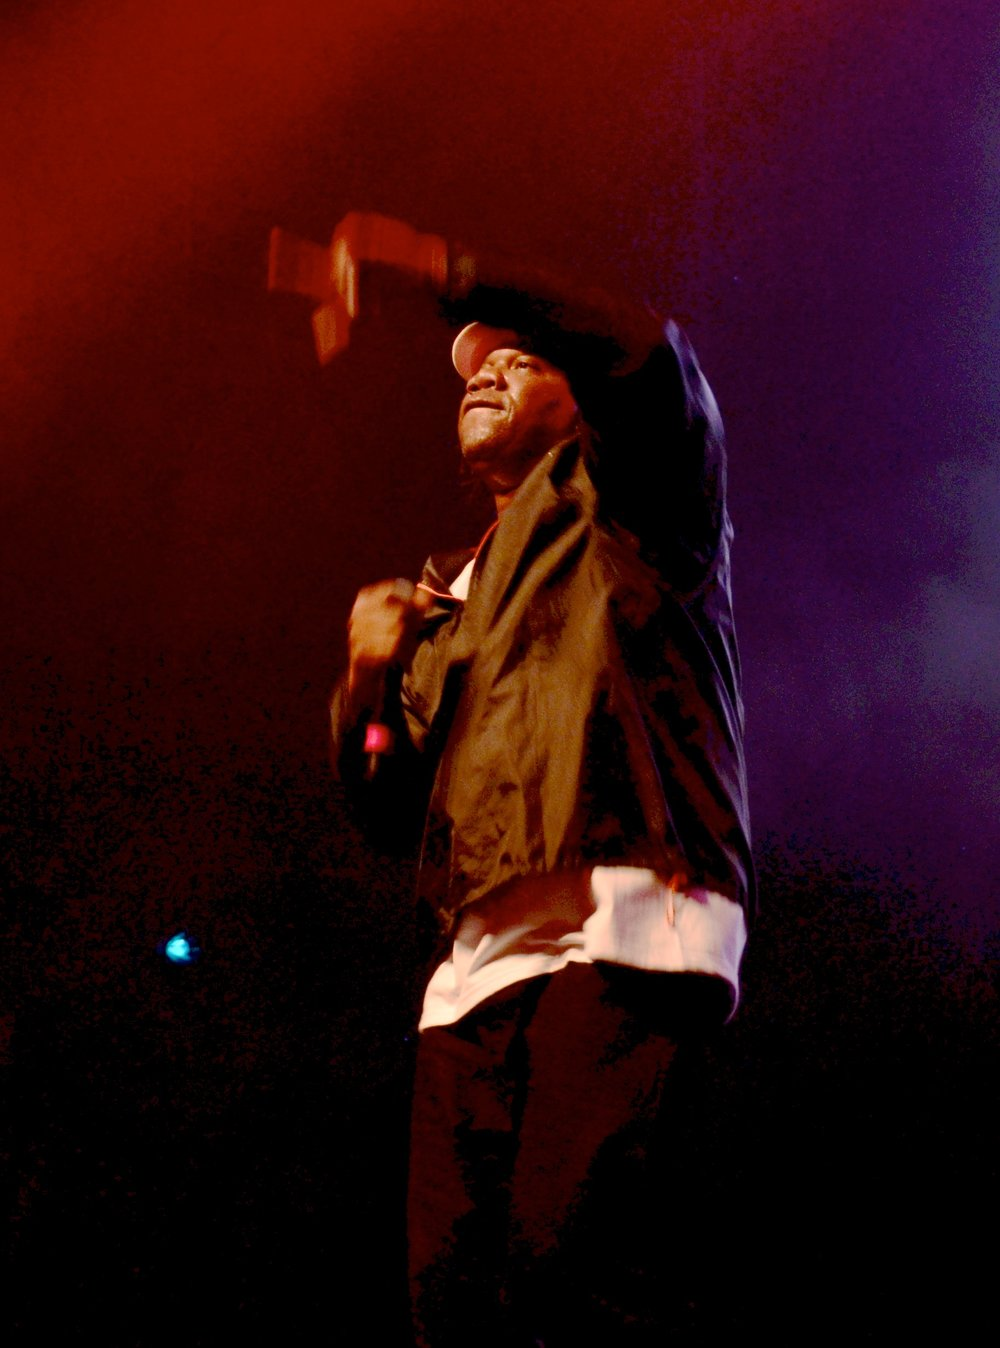 "I have been listening to the Hip Hop artist, KRS-ONE for the past 30 years and I finally took the opportunity to see him perform live and see him in conversation as part of the Moogfest in Durham, NC. After his conversation, KRS did something I should've expected from him but was still left in awe. He took time with every individual that came down to speak with him and he engaged with them on a very personal level. I got the chance to shake his hand and to express my gratitude for him and the messages in his music that has heavily influenced my life and helped shape me into the person that I have become. Whether it be my interest to study Egyptology or my decision to pursue my current passion through my venture Elemental Financial, KRS's lyrics and the music was in my ears helping me better understand myself and how I could use my gifts to Uplift. Our conversation was quick but it touched on the idea of wealth and thus brought me to think about the song  Health, Wealth, Self.   On the last song of his self-titled album, KRS-ONE tells us that he's not going to need anything else other than health, wealth, and knowledge of self. This has been an important mantra in my life since hearing this track in high school. Through the song, KRS provides  5 lessons for Emcee longevity , and as I hear these lessons now they can easily be substituted for any other career path as well as providing an understanding of Wealth.   1. ""If it ain't fun you're done. If you don't like what you do - your through""  If you are pursuing your passion it should be driven by your love for what you are doing and will likely be shaped by your values. In terms of understanding wealth, we'll call this Cultural Capital.  2. ""Make sure you've got a dope Crew"" -  The relationships you build and those that you surround yourself with should not only have your back but should have your best interests at heart. To be a supreme being you'll want to surround yourself with others that are seeking to be supreme as well. Your Social Capital is another important aspect of understanding wealth.  3. ""Emcees should have other ways of making money - Learn other things besides music, make money elsewhere that way Hip Hop you won't abuse it.""  This lesson touches on Financial Capital, which is what we usually associate with wealth. Making money, having money, the numbers in our bank or retirement accounts. I love this contradictory message - KRS is telling emcee's that if you are doing this just to make money then you will lack longevity, so find other streams of revenue to allow your art to remain artistic.  4. ""Sell your image never sell a record"" -  In 2018 this is much more apparent than it was in 1995 when it was more prevalent to 'sell a record'. In the day of streaming,  fans are more interested in your brand, in your authentic self and are looking to engage with your art more than just spinning the physical format of your music. Here we are talking about Human Capital and for all of us, this provides us with our greatest wealth potential. Be you!  5. ""The Illusion - What separates the Pro from the amateur is Stamina."" I take this lesson to state two things.  1)Wealth is not measured by consumption, don't let the illusion of what you see promoted by the media and marketing influence your consumer behaviors. 2)To be a professional at whatever you do takes time, effort, practice, evolving with the times.      Longevity isn't measured at the beginning of your career and it isn't measured by how much money you make or how much money you have. It is measured and acknowledged by those that you have taught, by those that you have touched, it is measured by what you have created and the other leaders that have learned from your lessons.     Thank you Mother, I'm out....   Sign up for the 5th Element Blog"